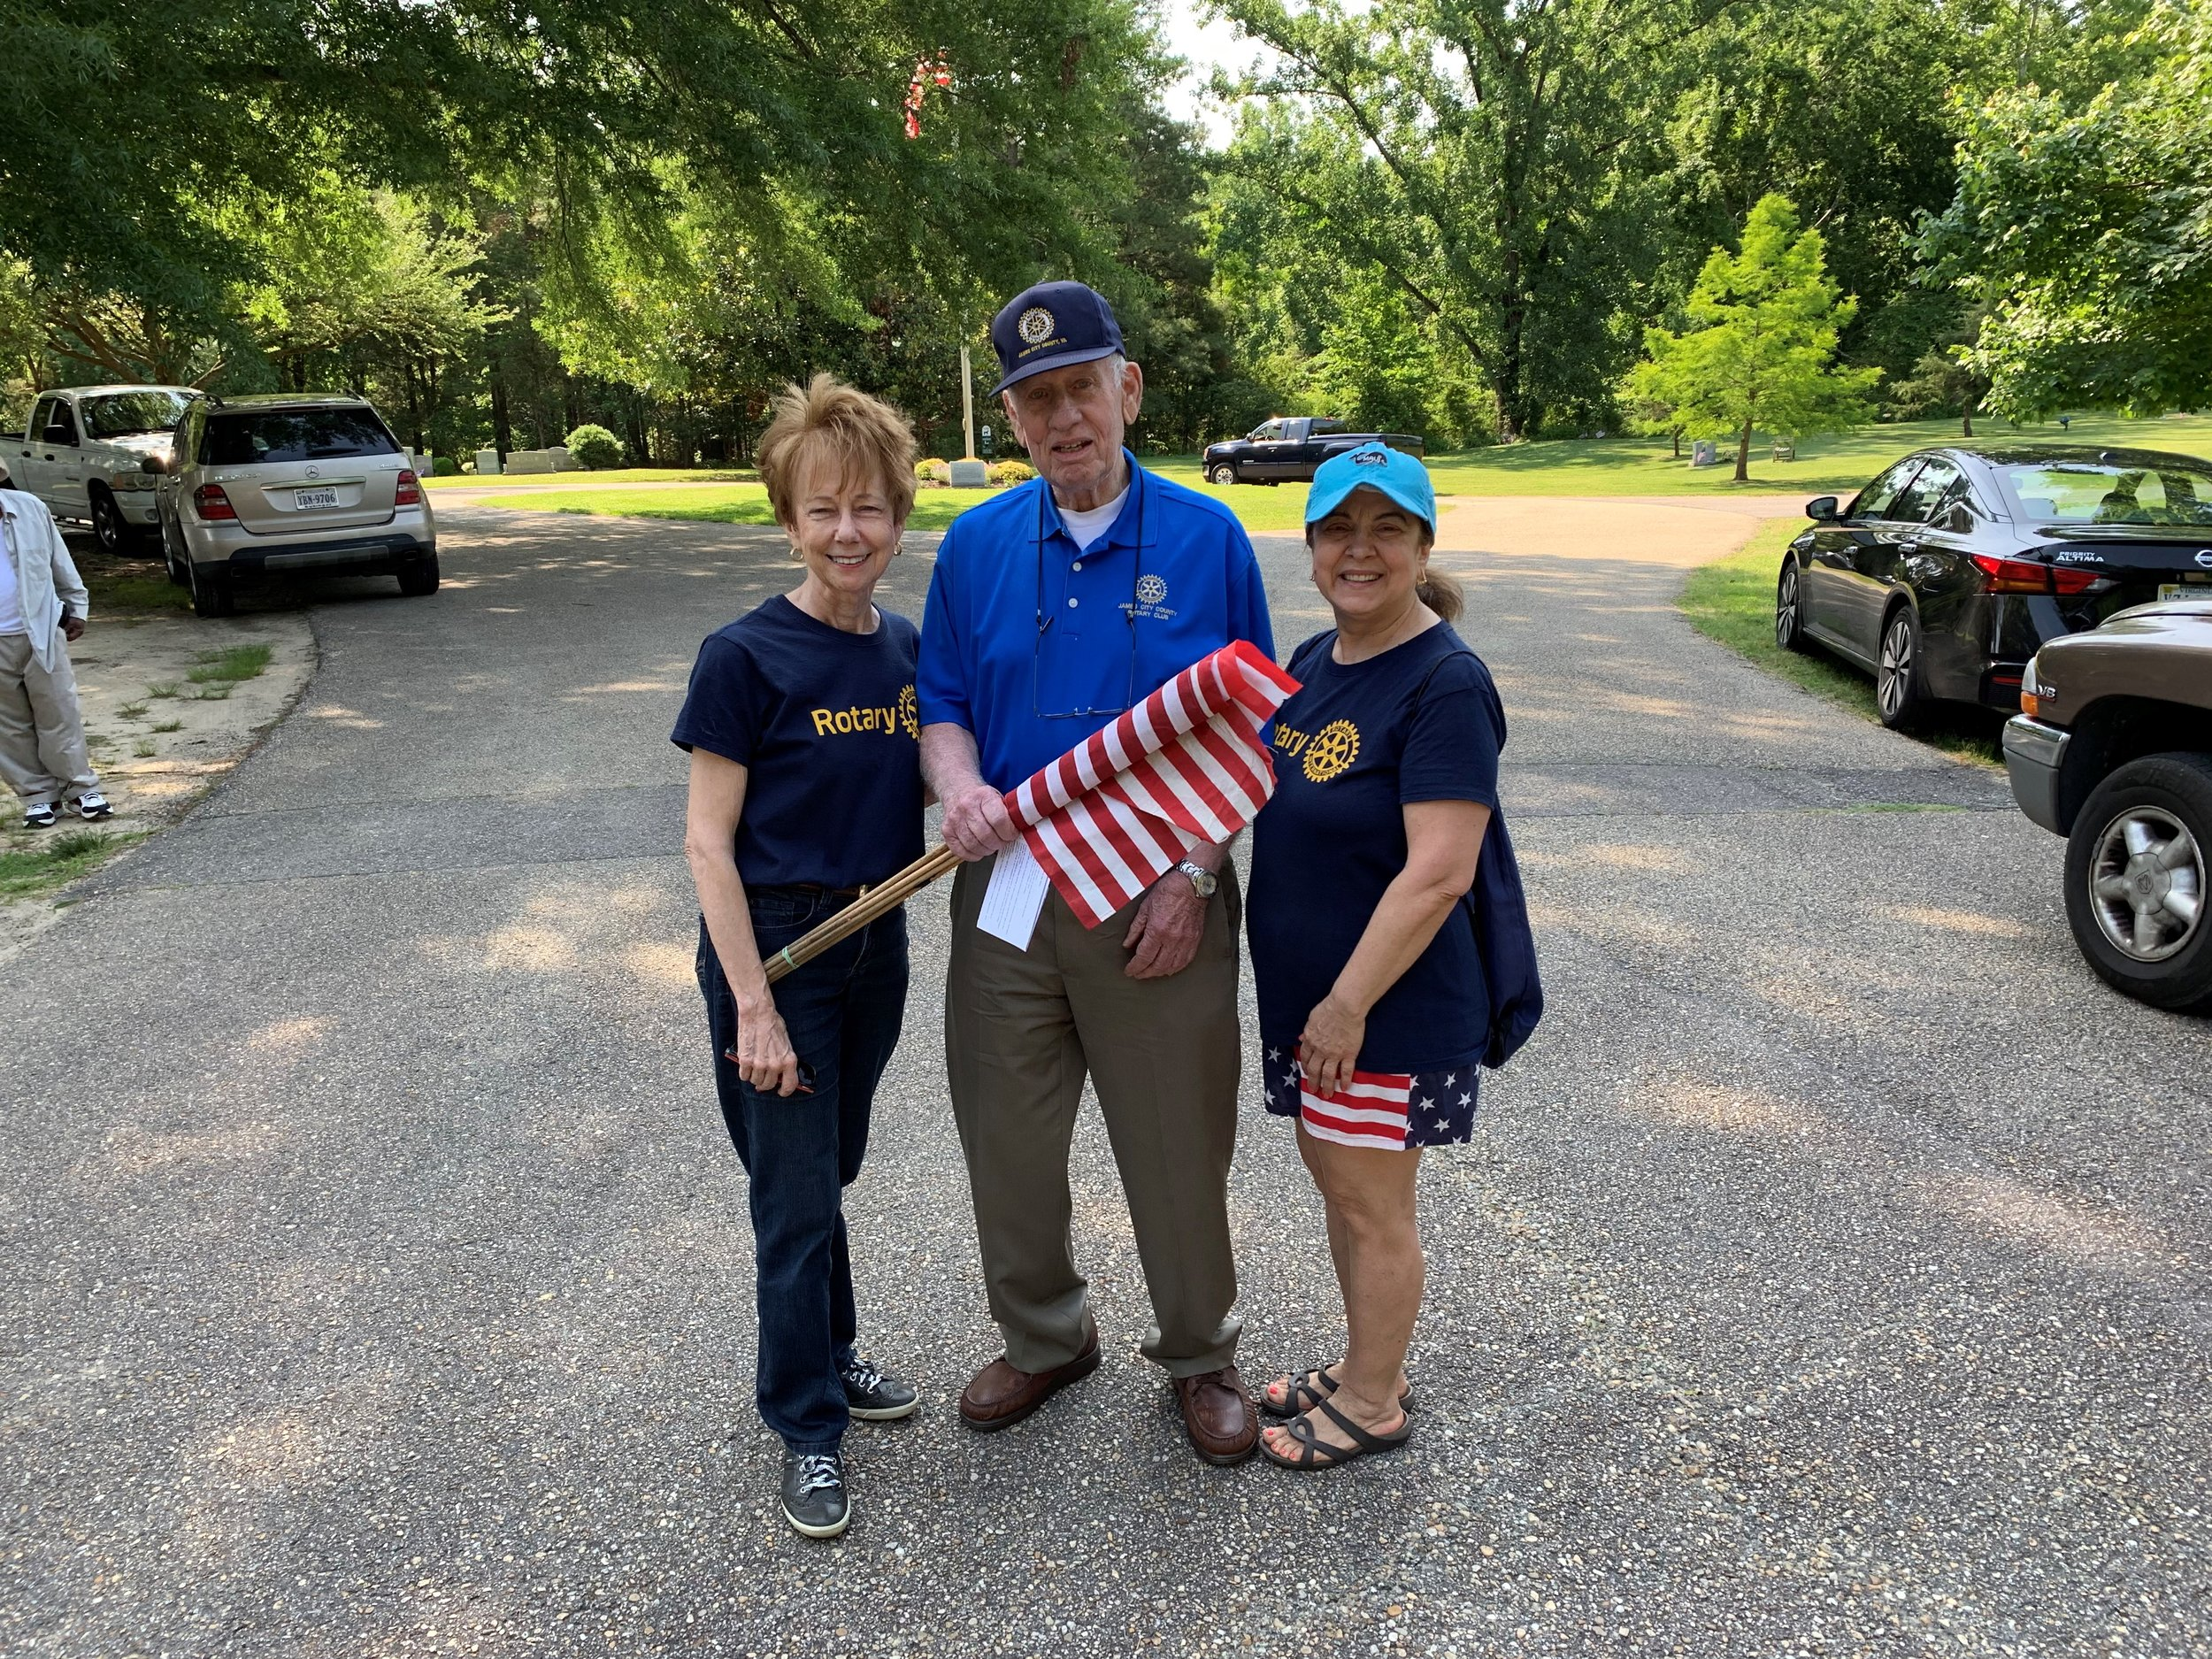 memorial day preps - Neva, John and Carmelina help with placement of flags on veterans graves in Cedar Grove Cemetery